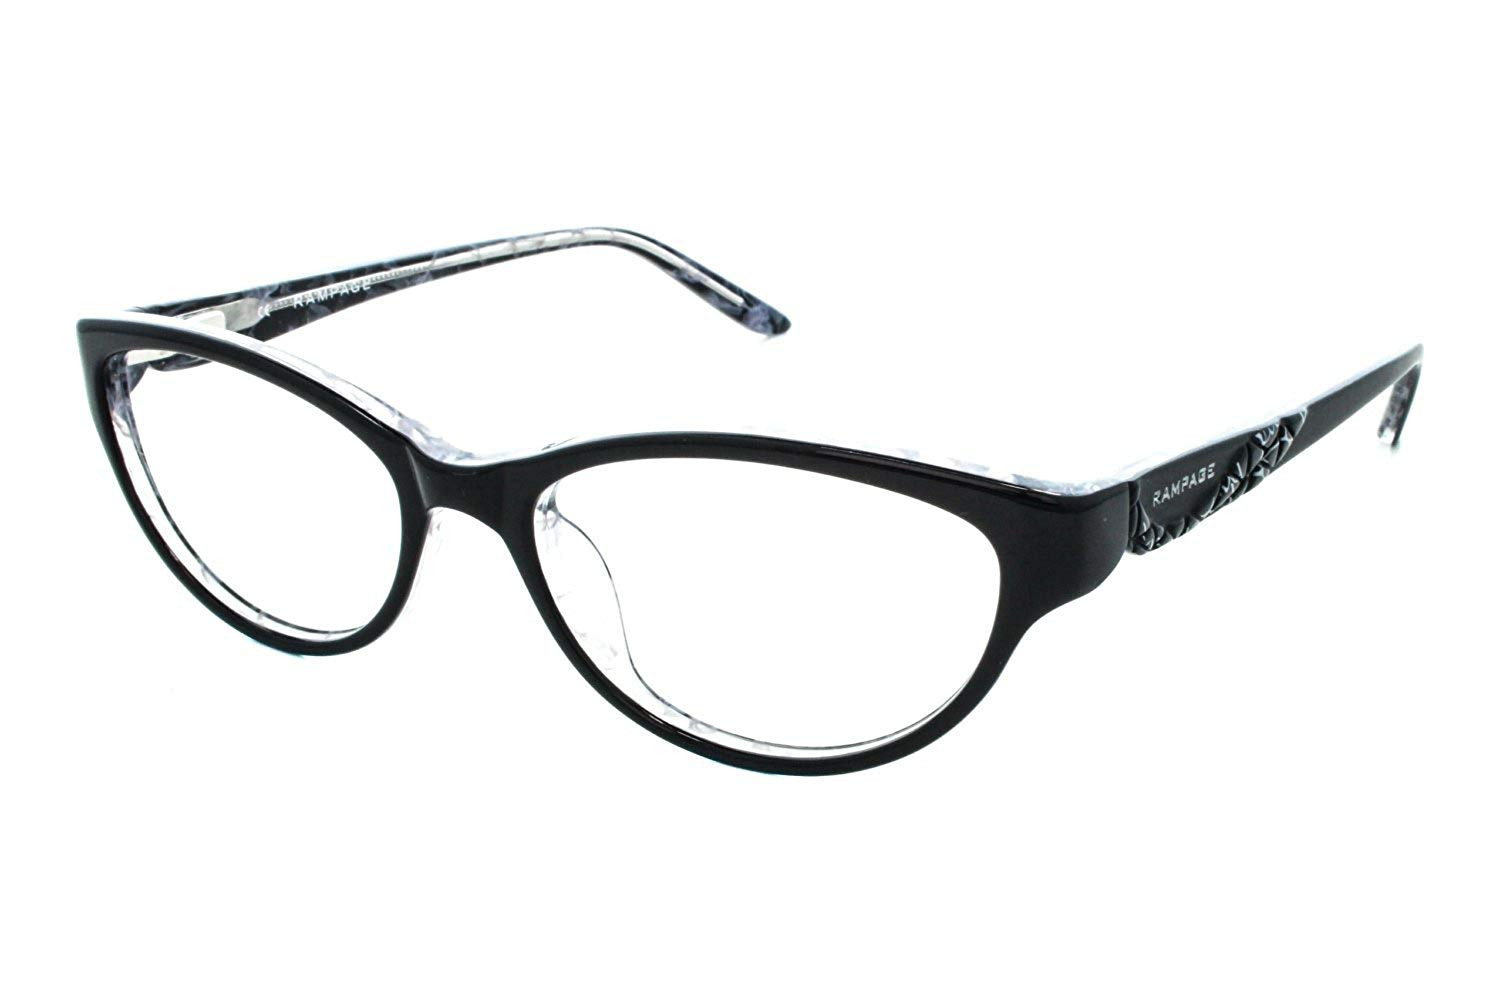 2872c4ef786da Get Quotations · RAMPAGE Eyeglasses R 178 Black White 51MM